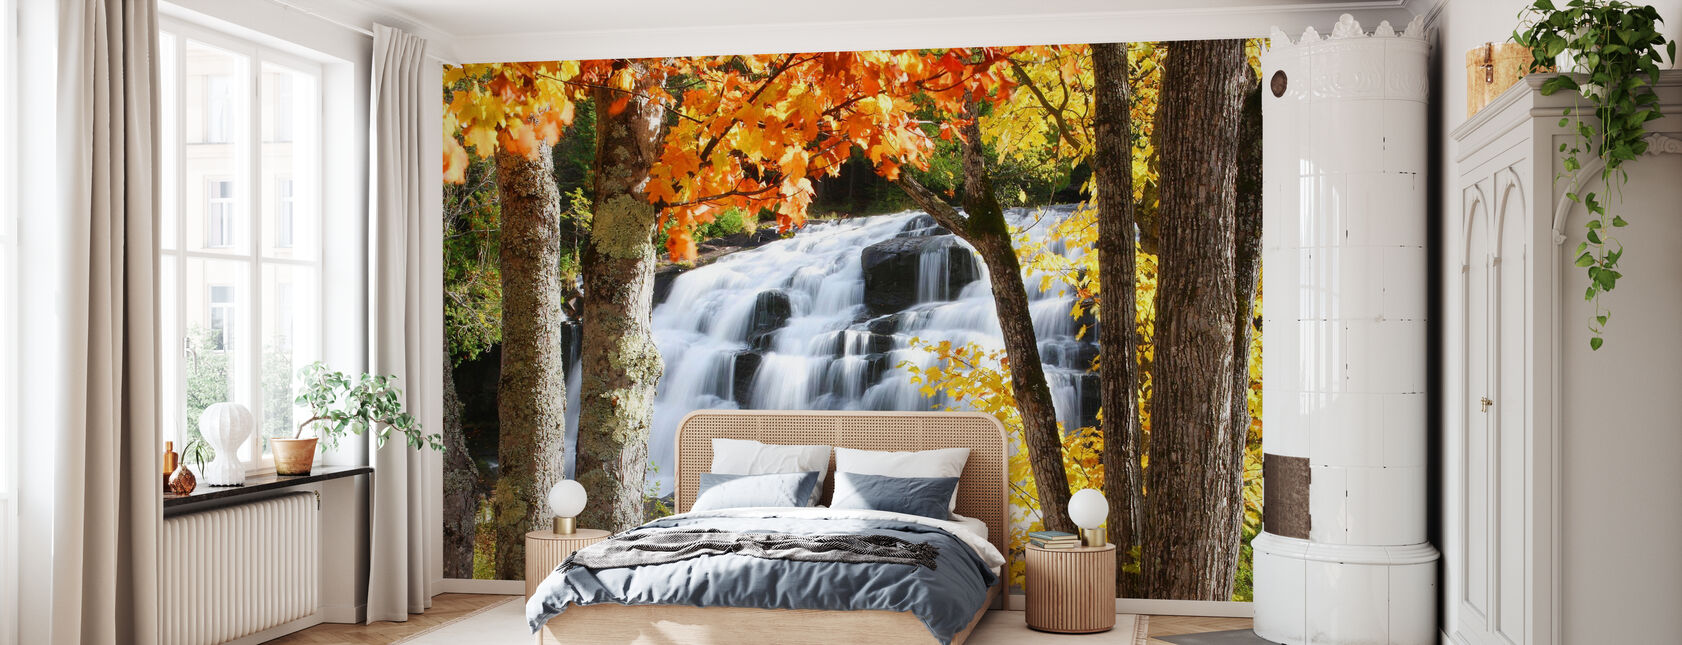 Bond Falls dressed in Autumn colors - Wallpaper - Bedroom